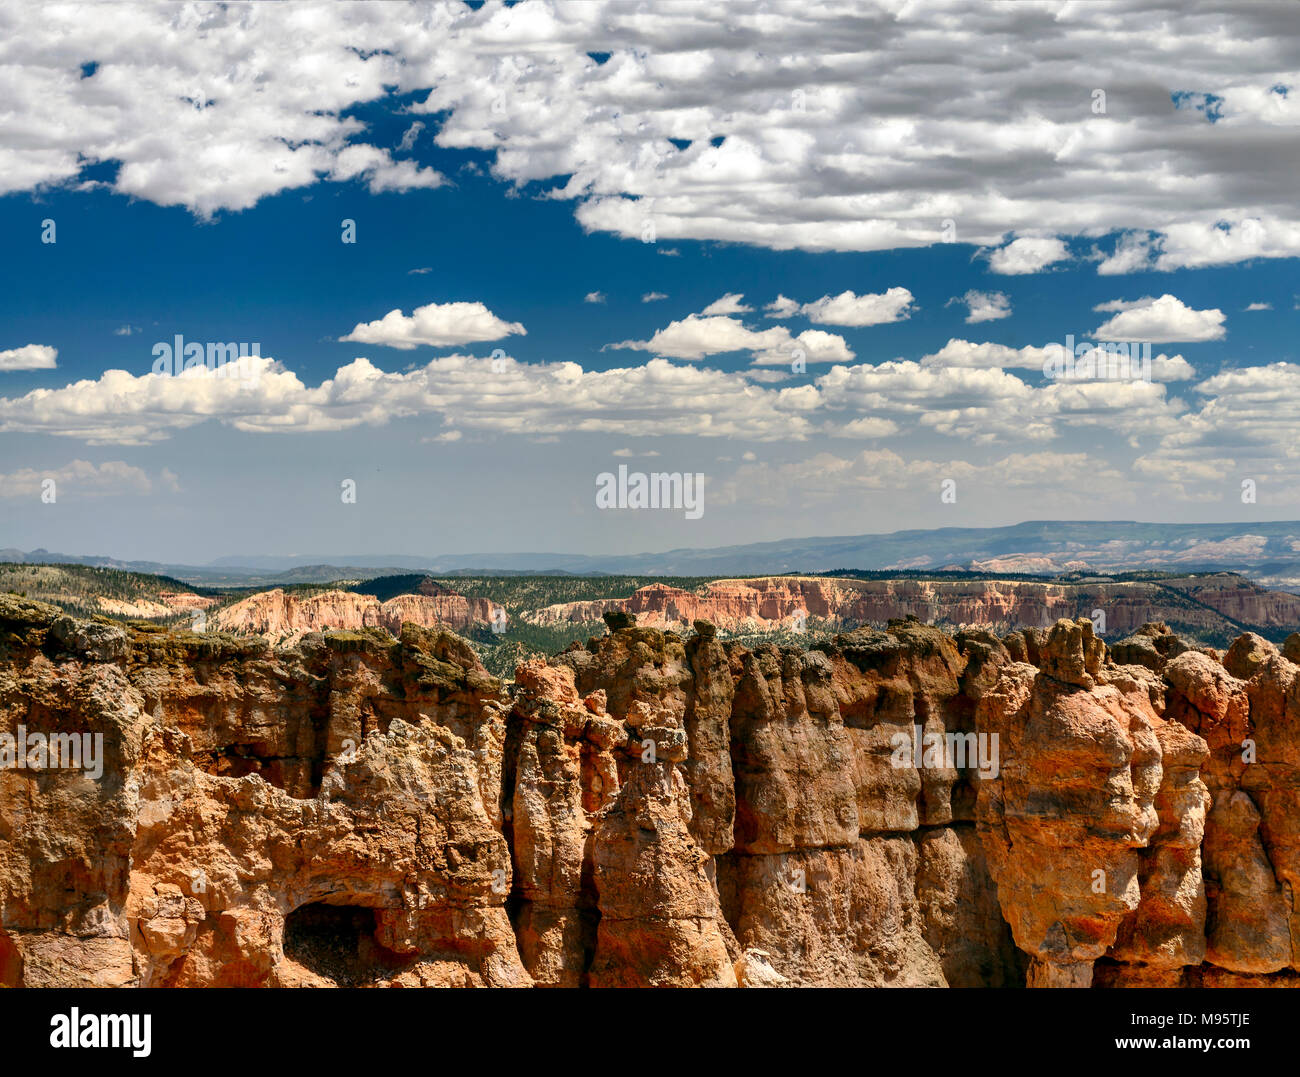 View of orange sandstone rock formations, cliffs snd steep hillsides under blue sky with white fluffy clouds. - Stock Image